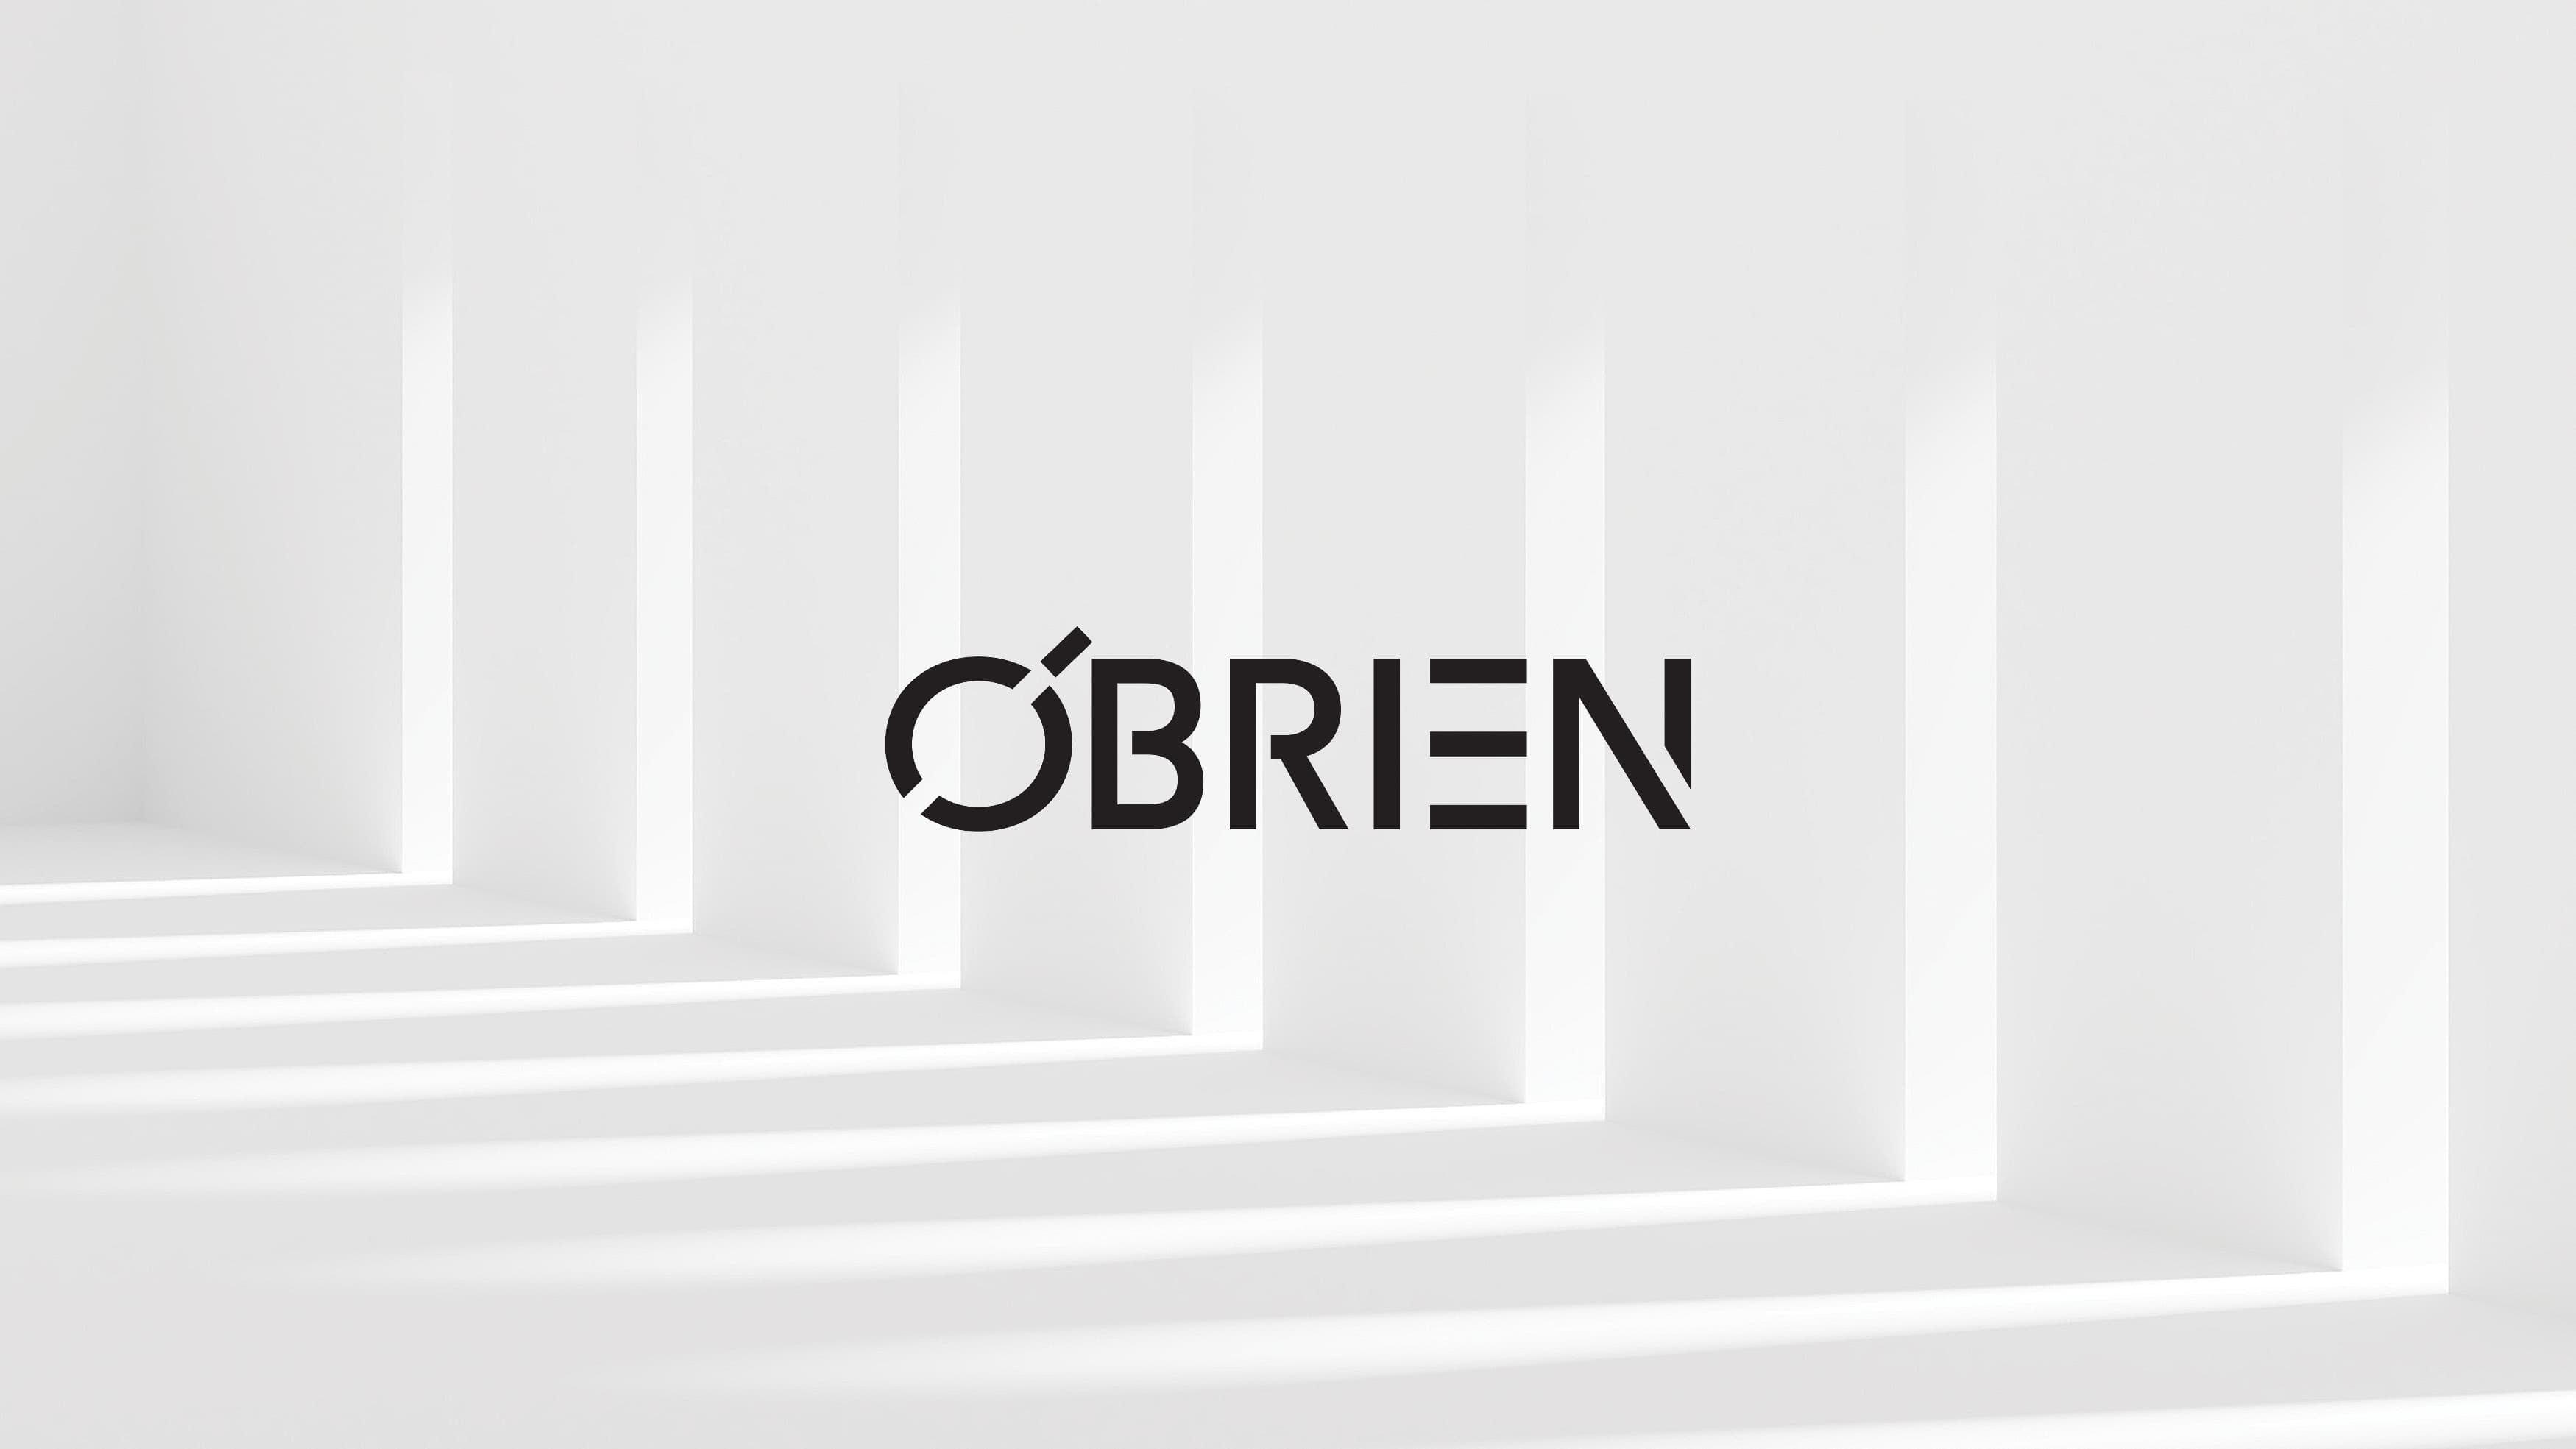 White architectural background with black Obrien logo.